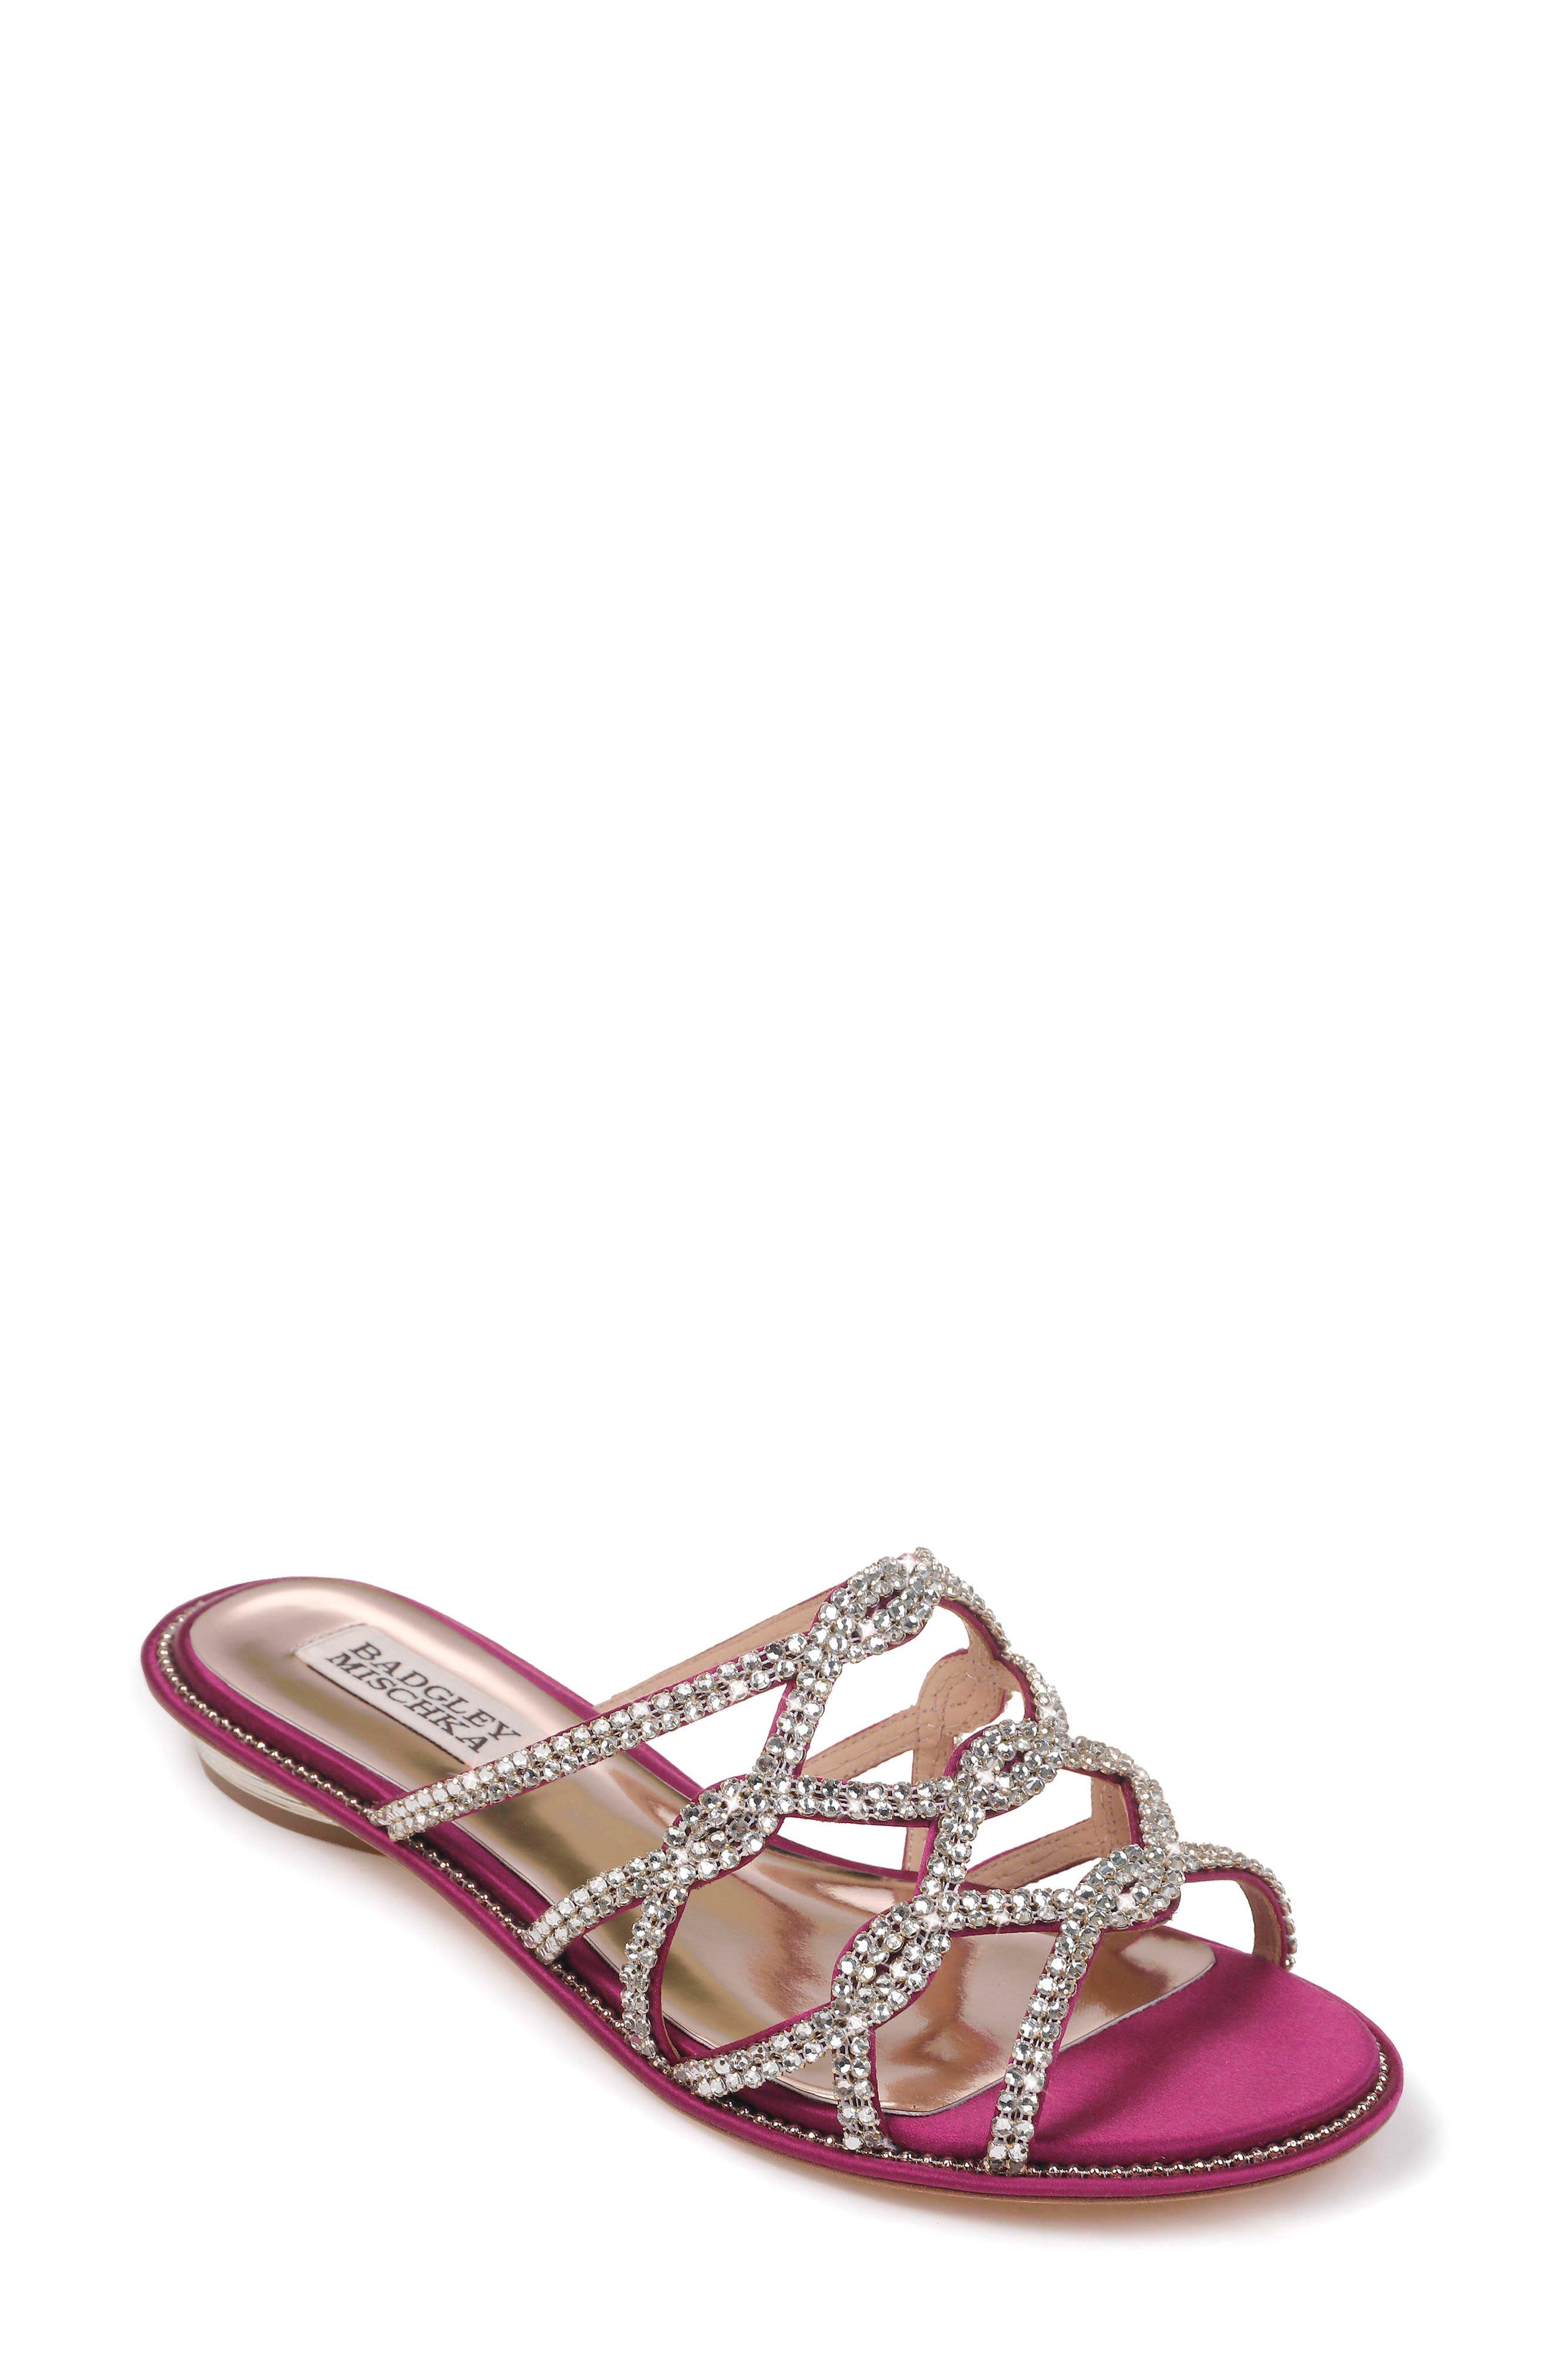 Sofie Strappy Sandal,                             Main thumbnail 1, color,                             Mulberry Satin